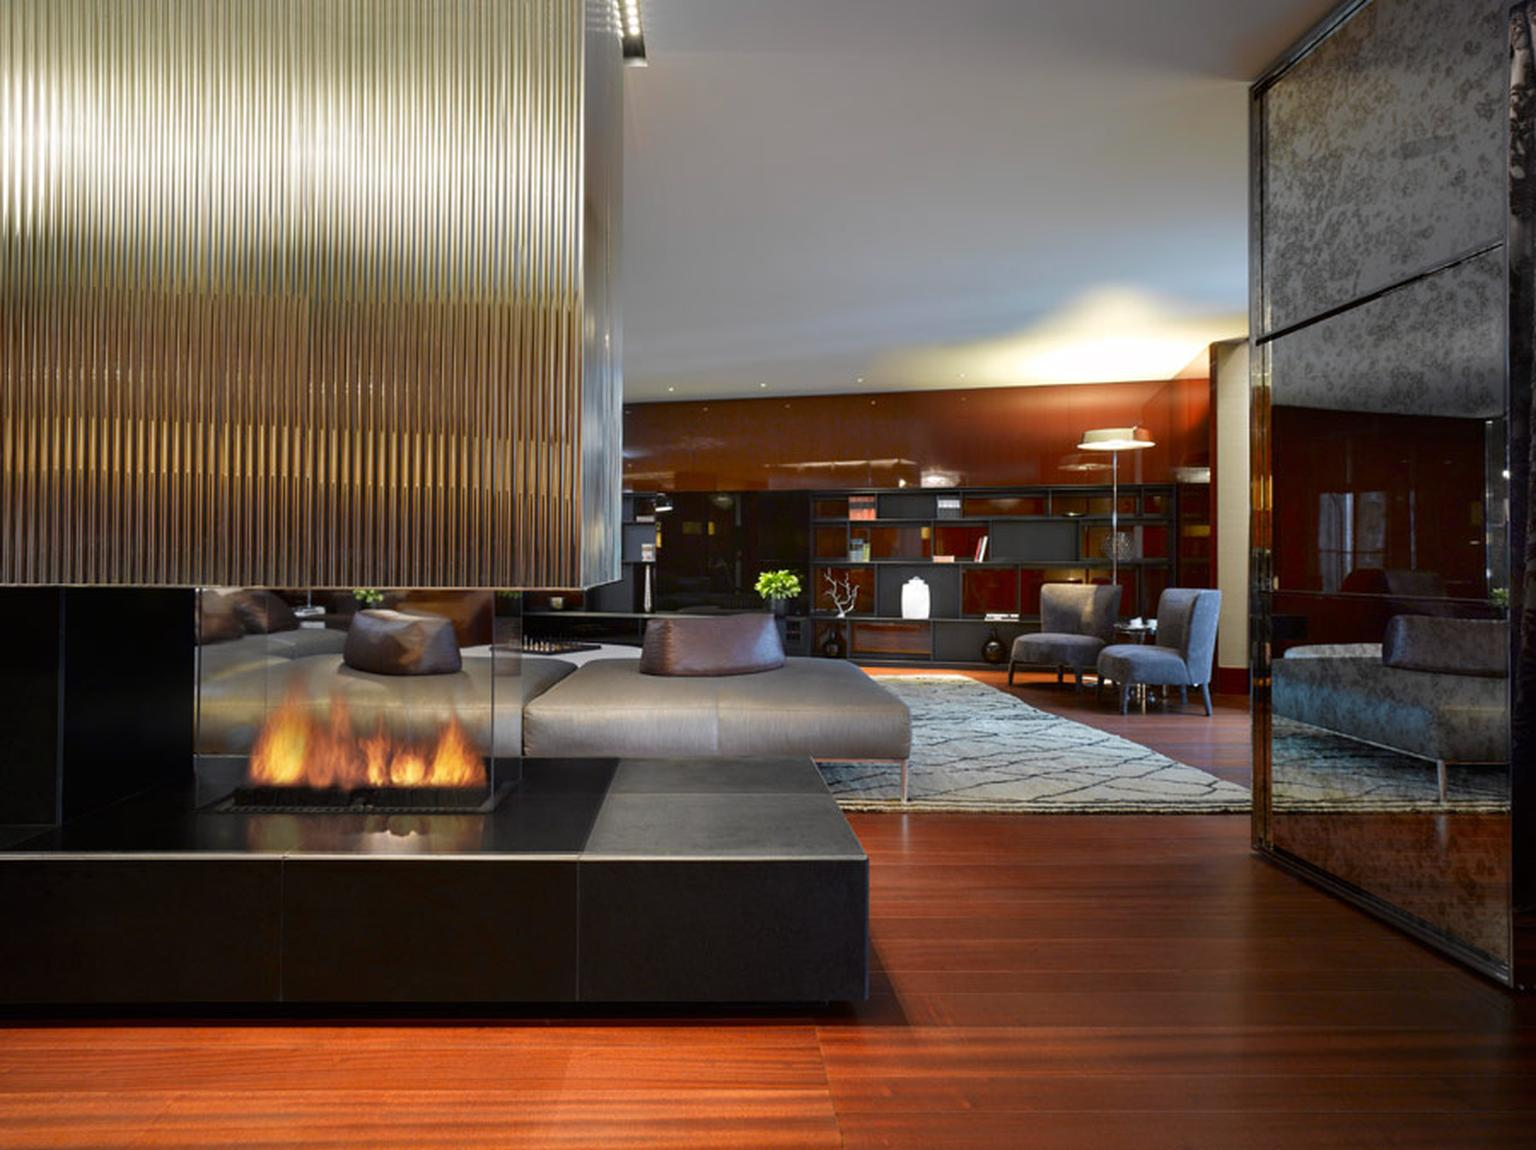 Bulgari-Hotel-Bulgari-Suite-Living-Room.jpg